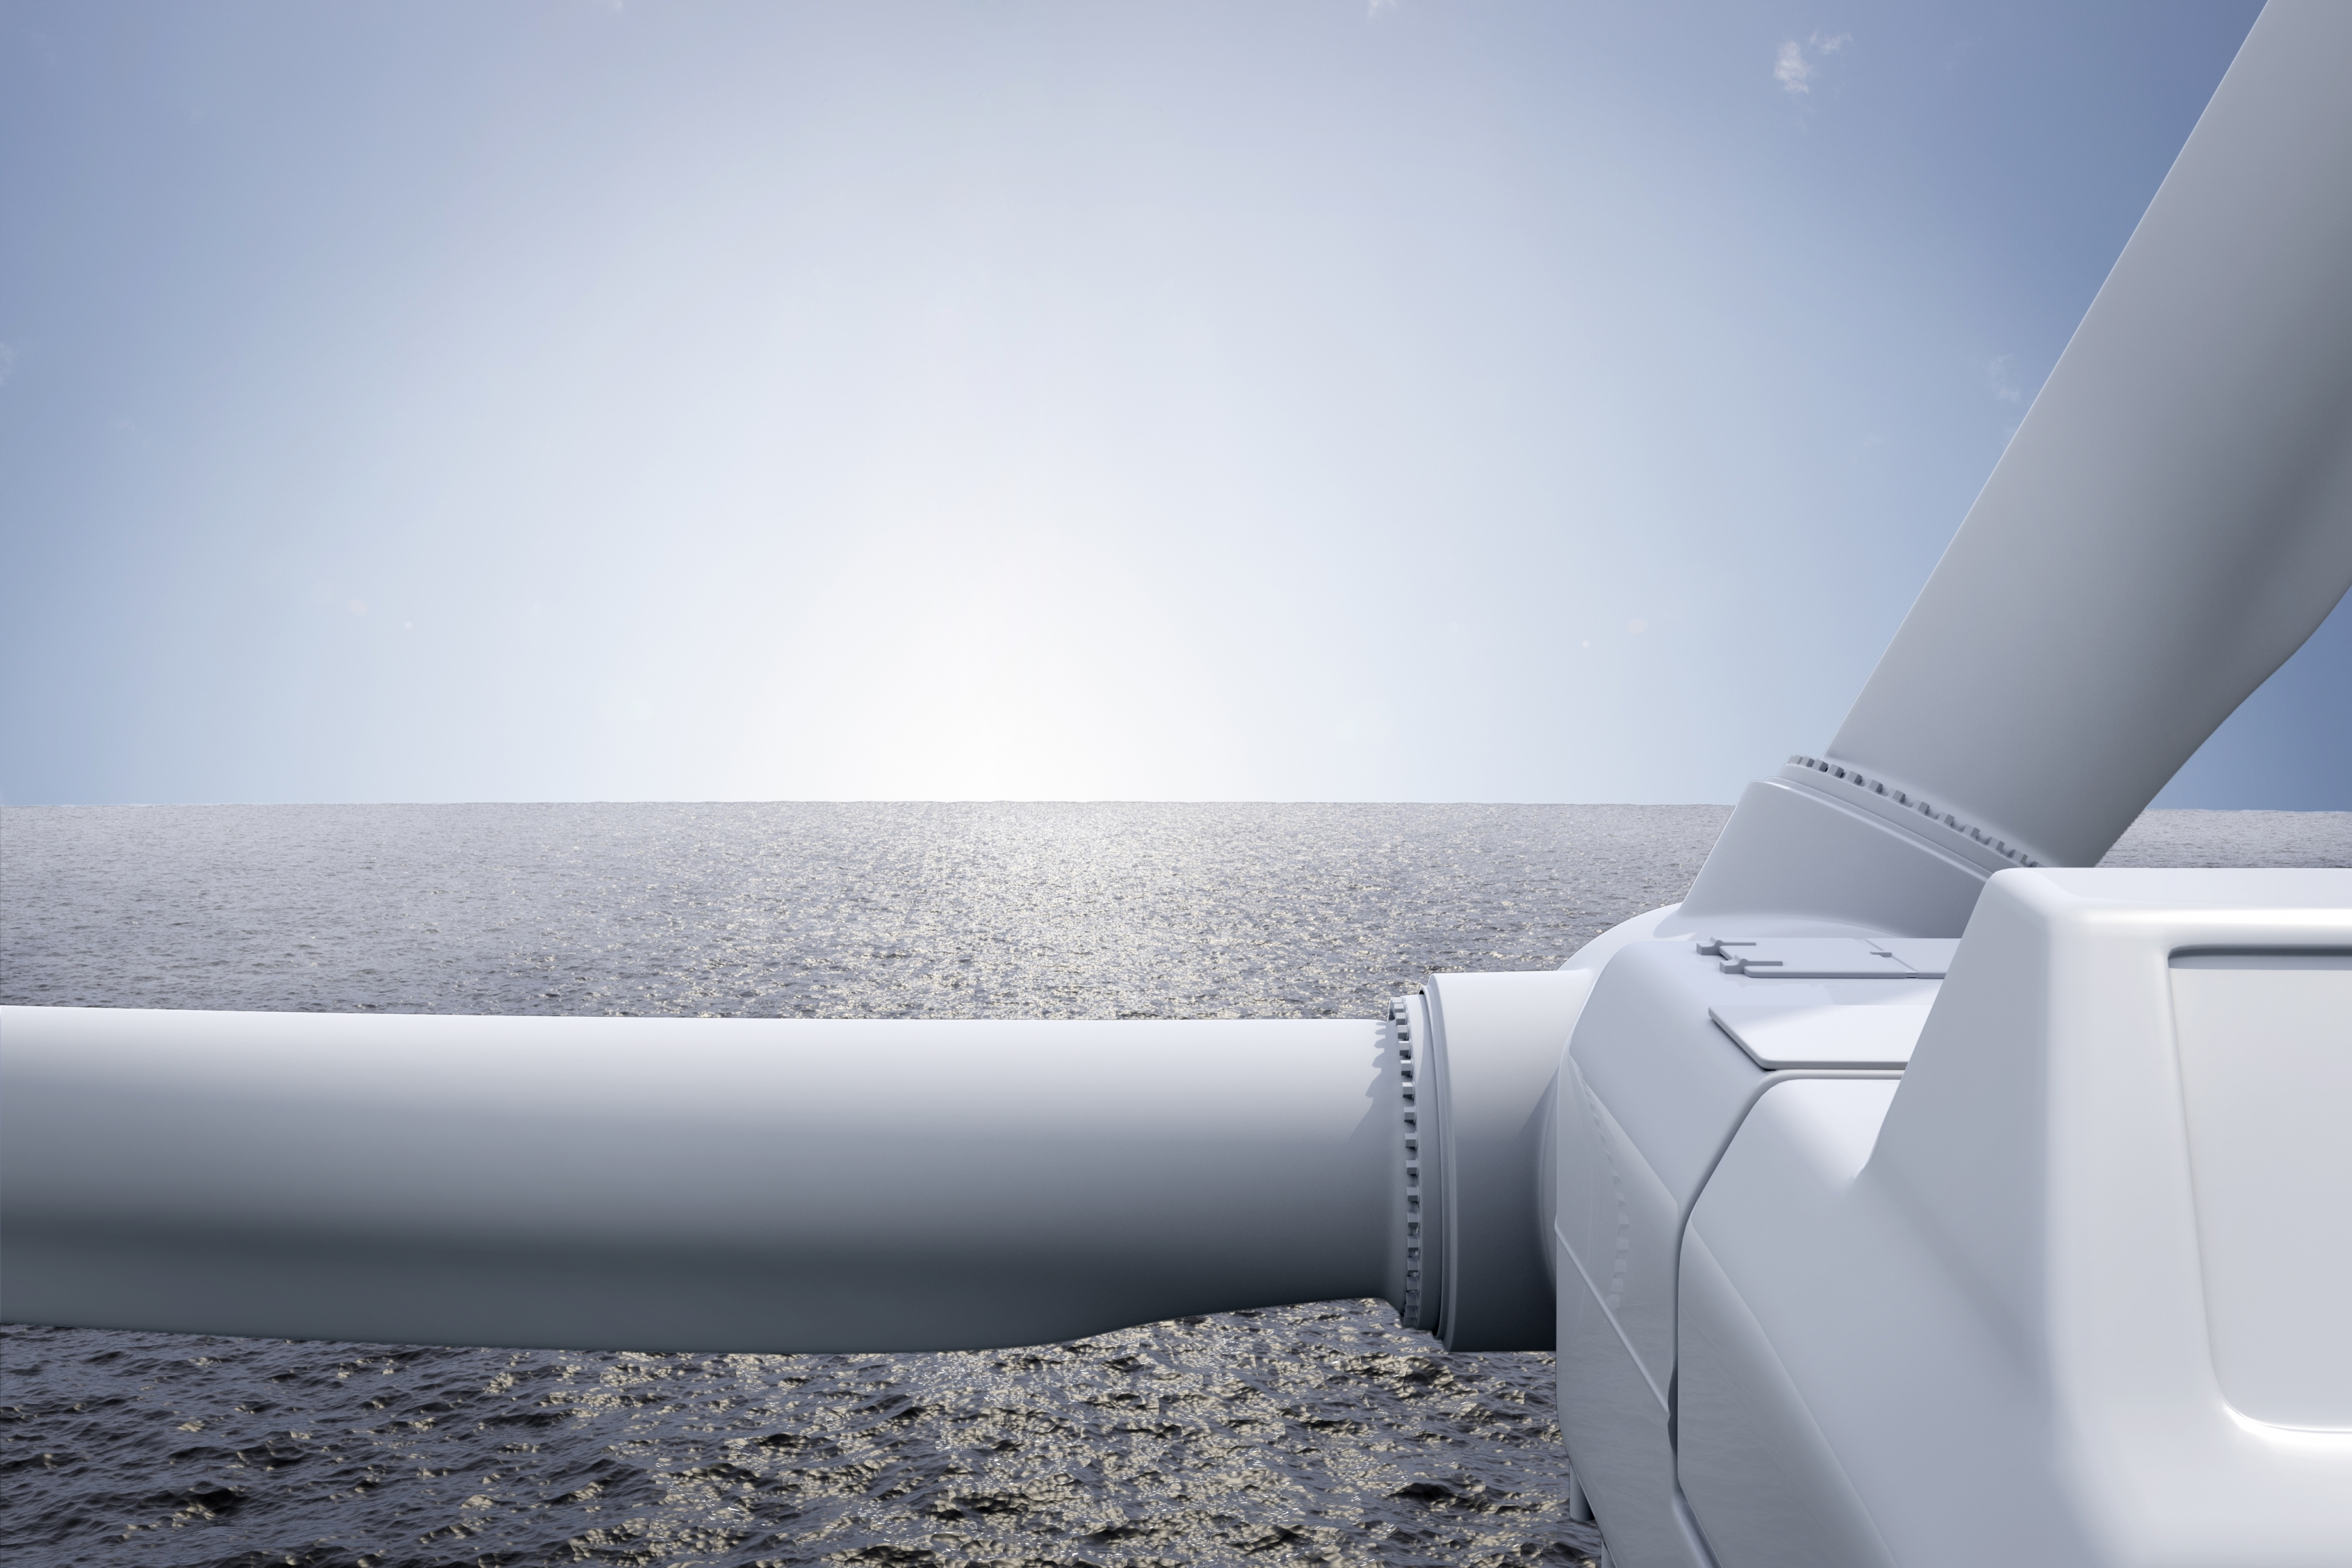 First results of the Floating Offshore Wind Project supported by Microsoft's Artificial Intelligence